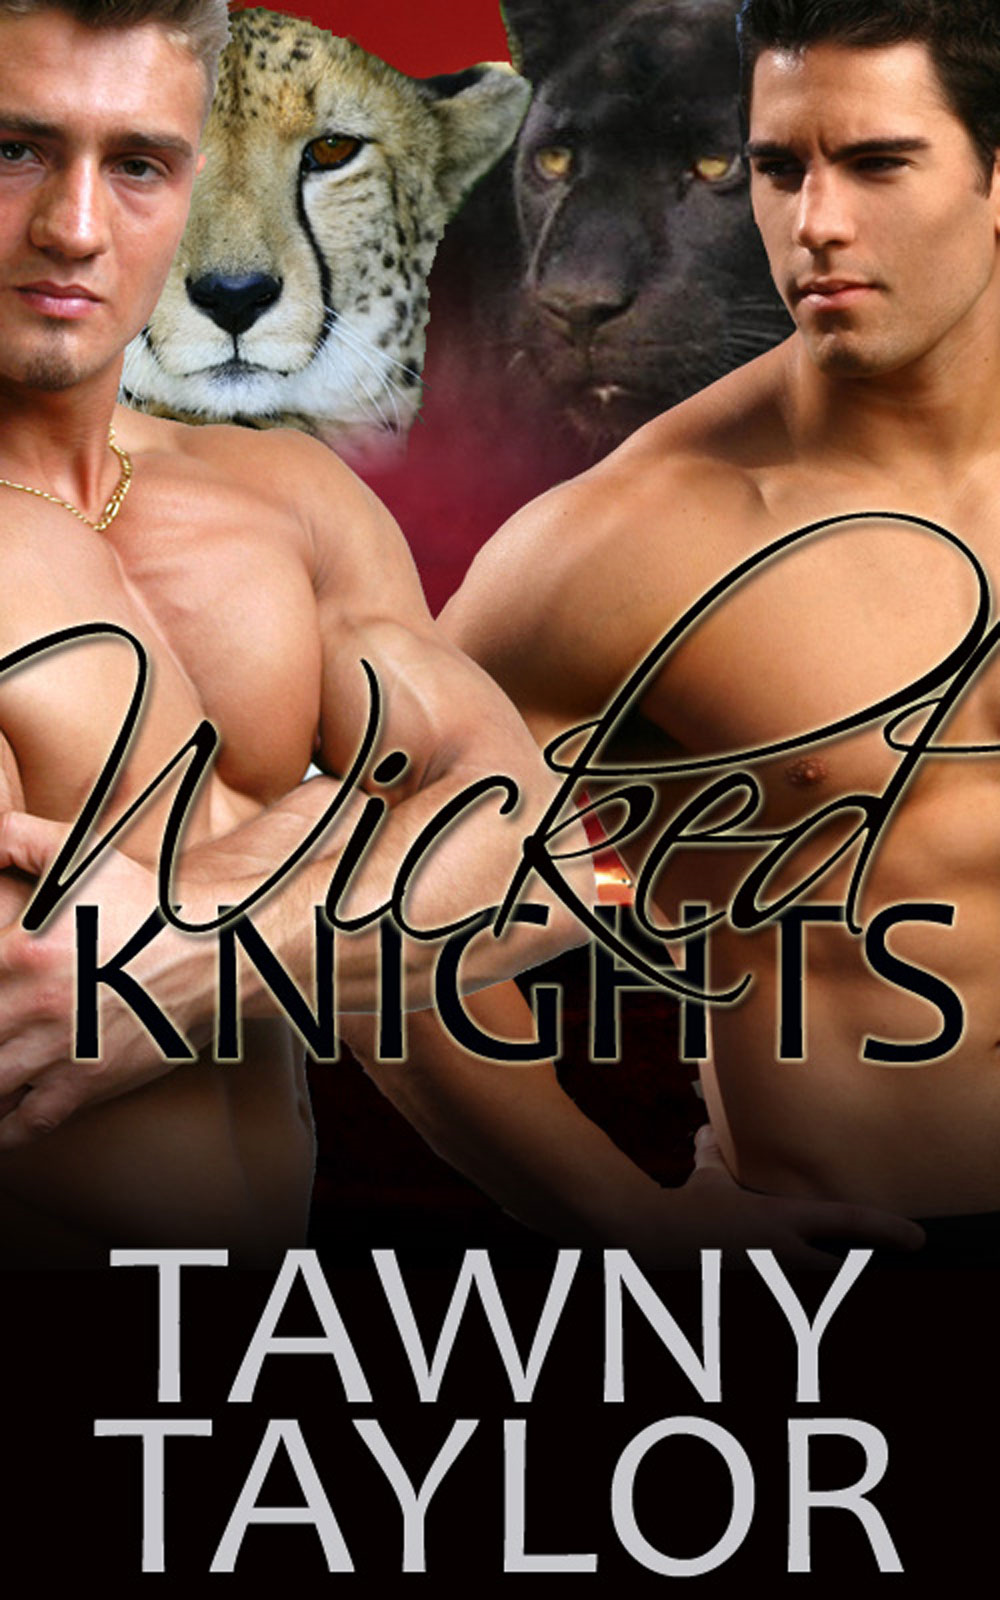 Fifty Shades of Romance: Wicked Knights